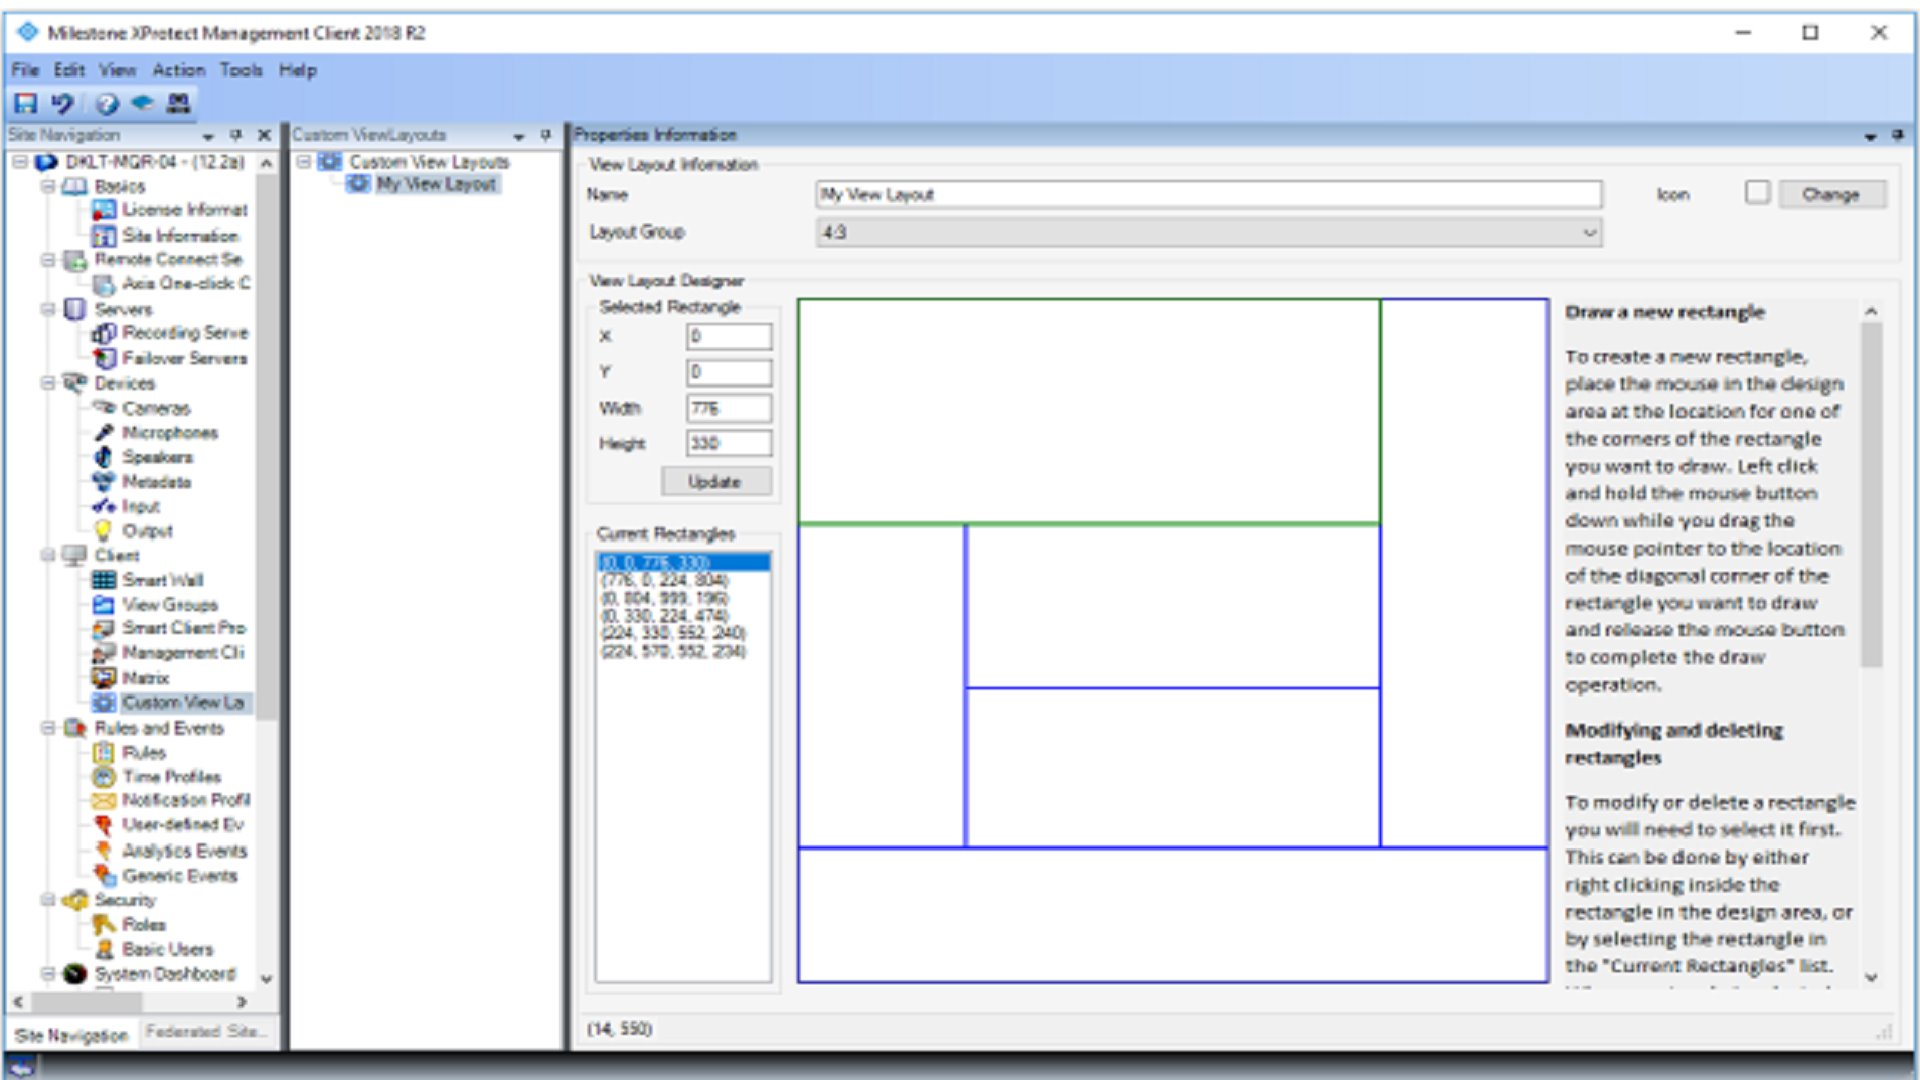 XProtect Custom View Layout Builder